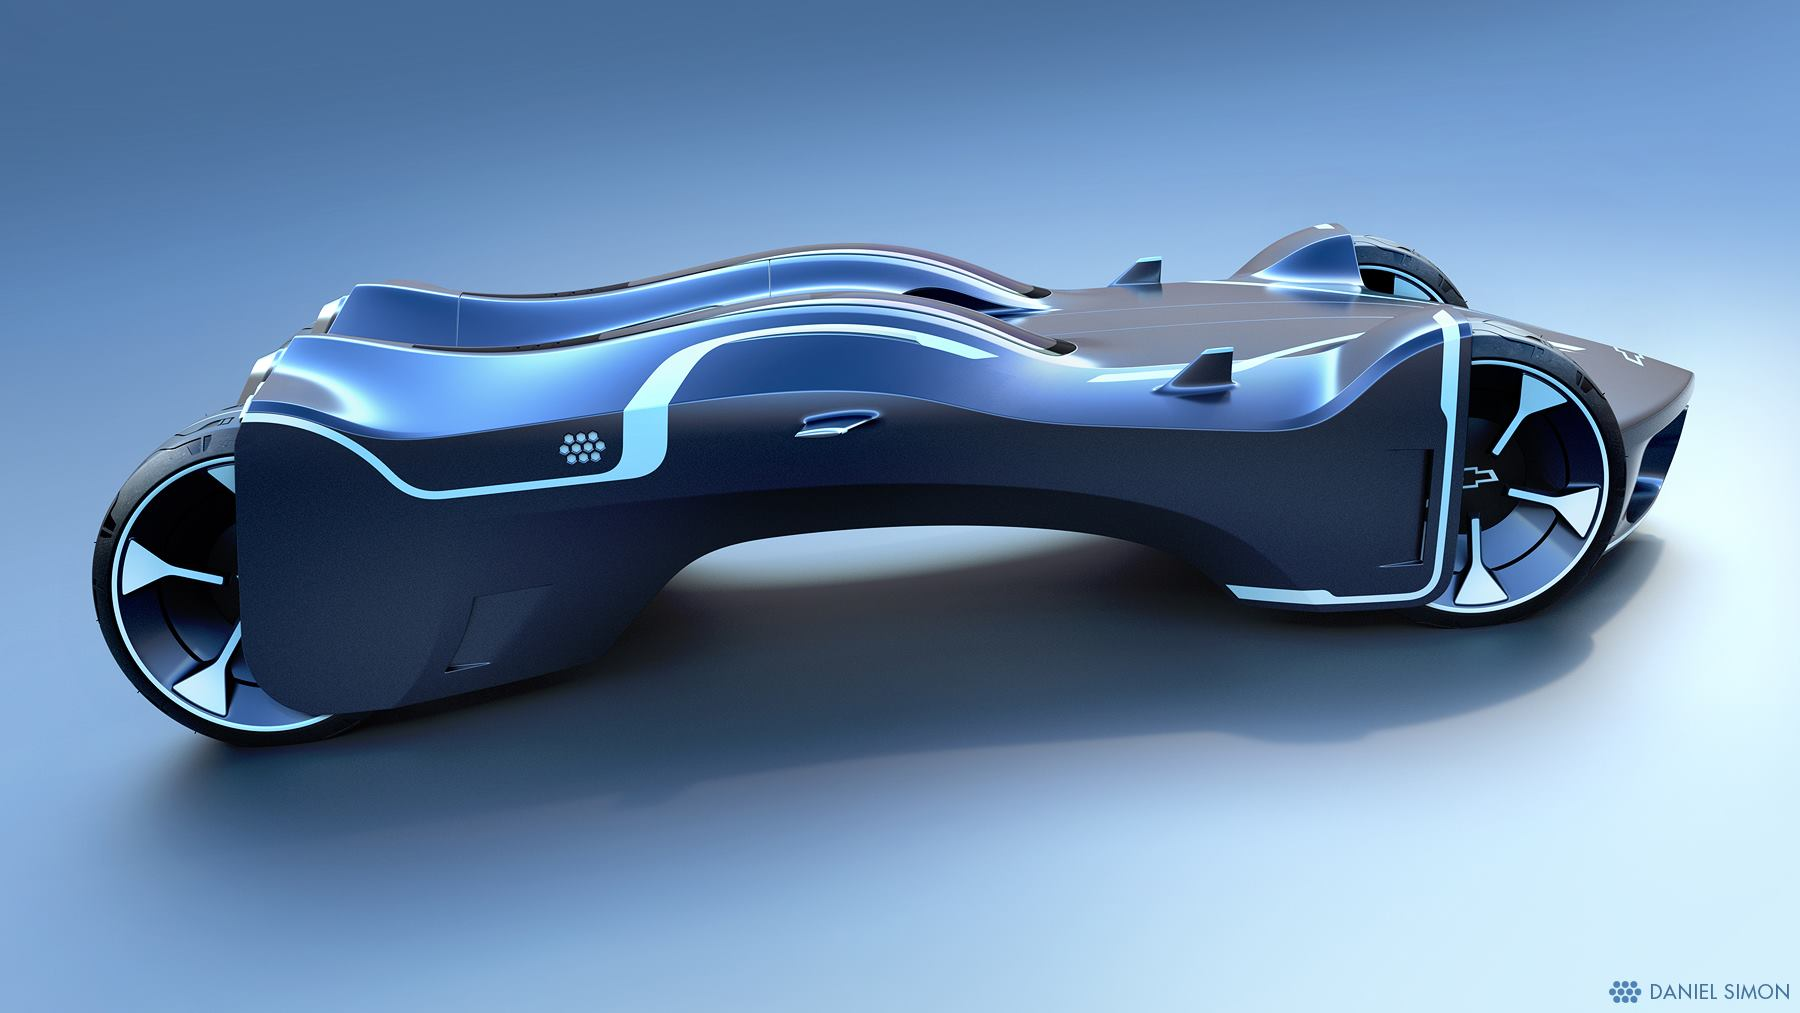 TRON Lightcycle Power Run Car Design by Daniel Simon (4 pics)